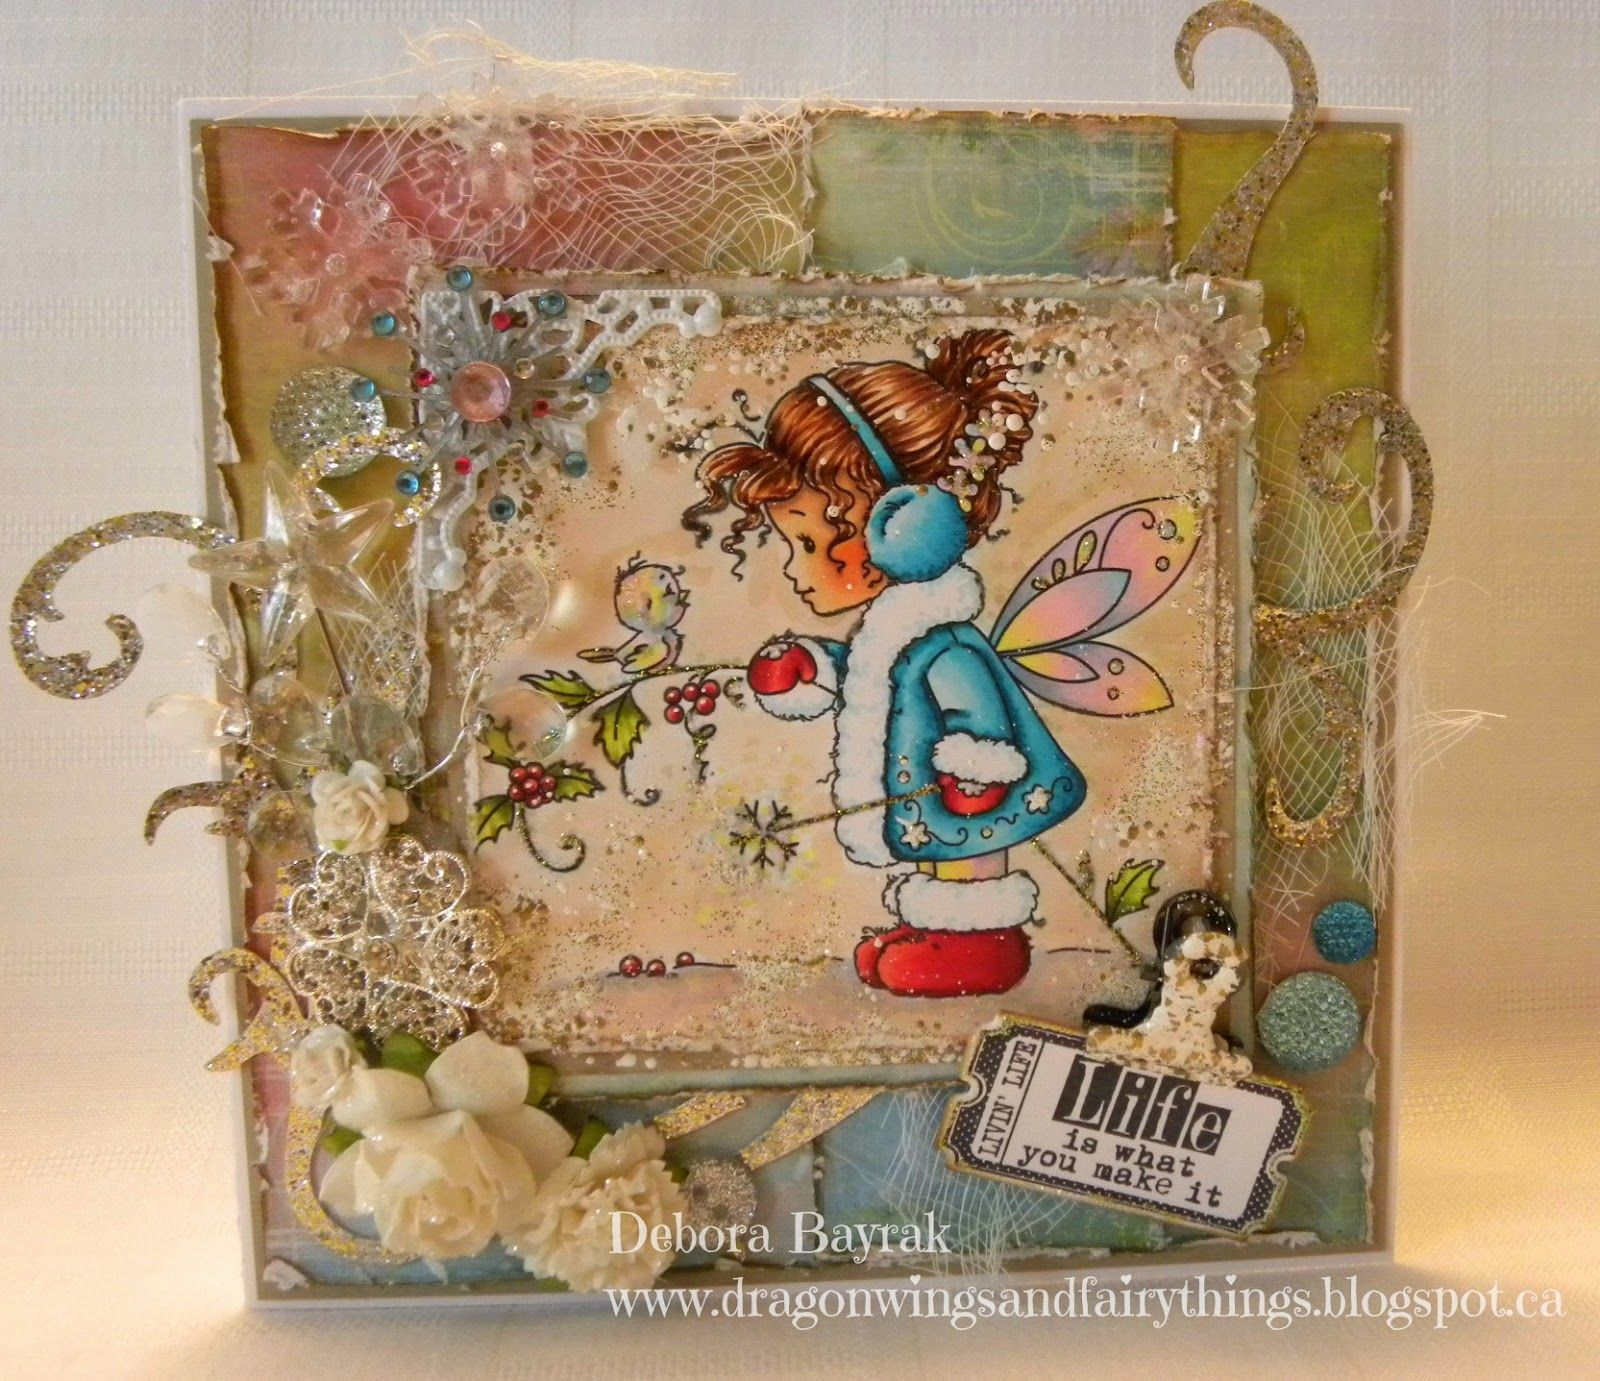 Life Is What You Make ItKit and Clowder Whimsy stamps